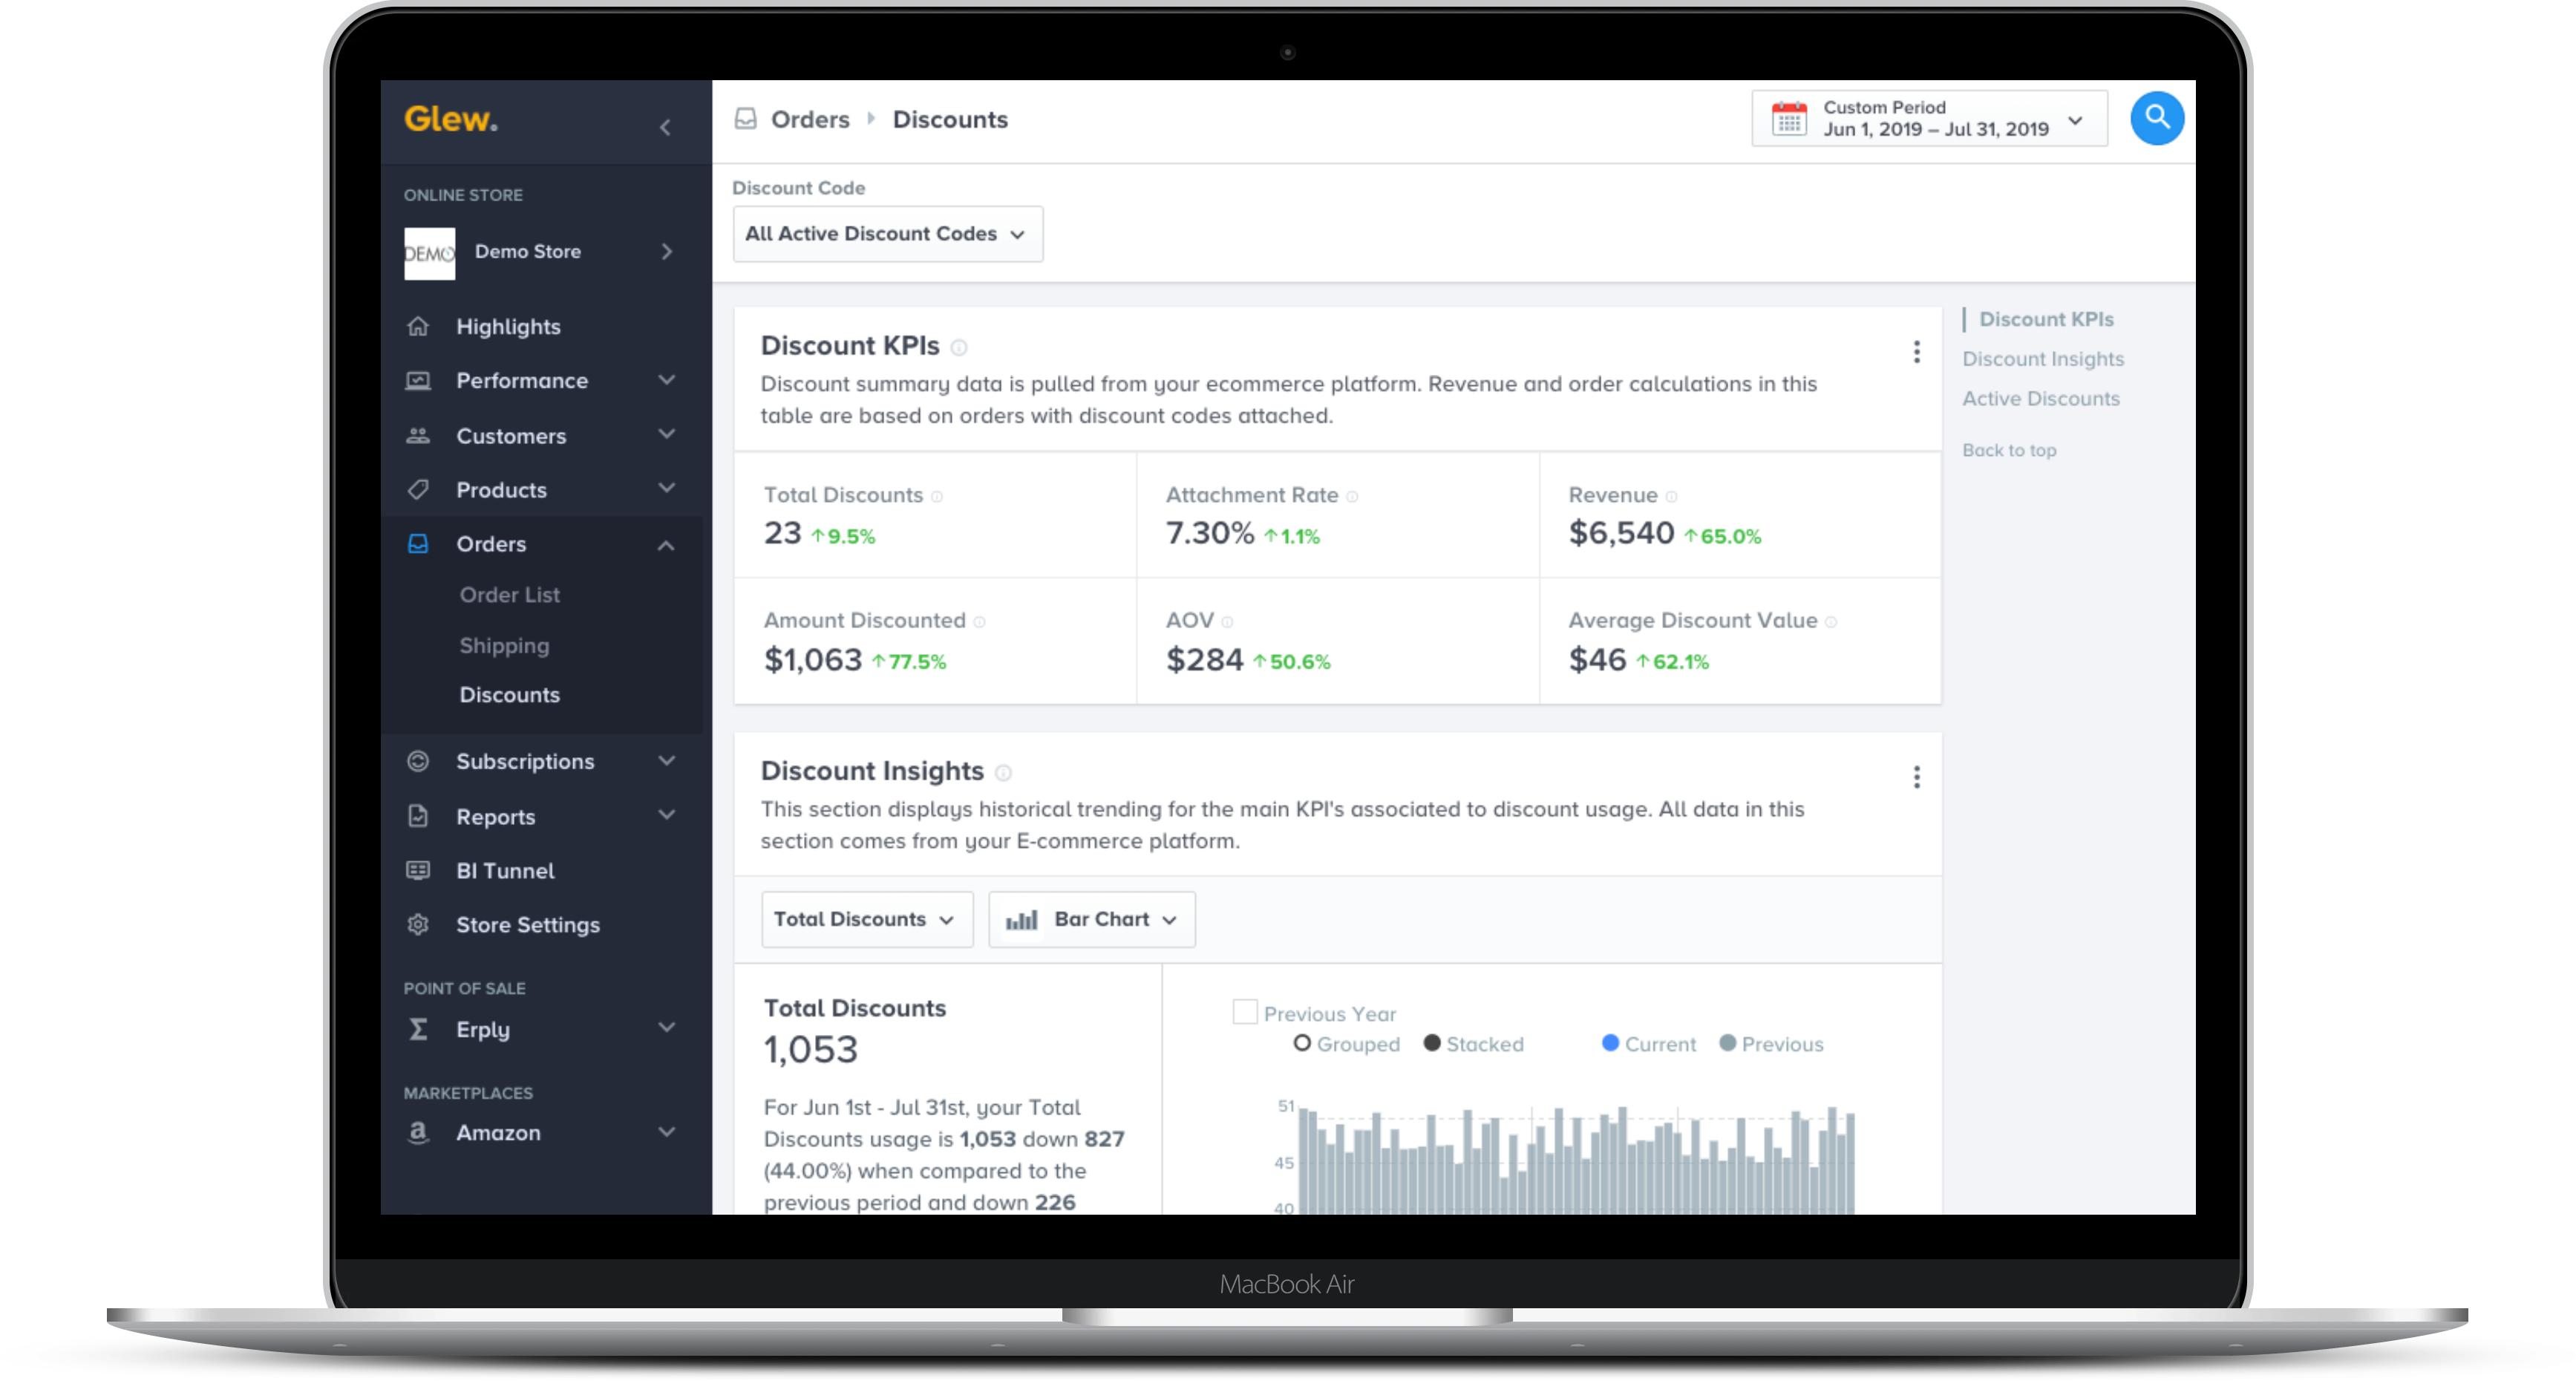 See it in Glew: Discount reporting in Glew, showing attachment rate, revenue, AOV, profit, margin, amount discounted, average discount value and more - total and by individual discount code